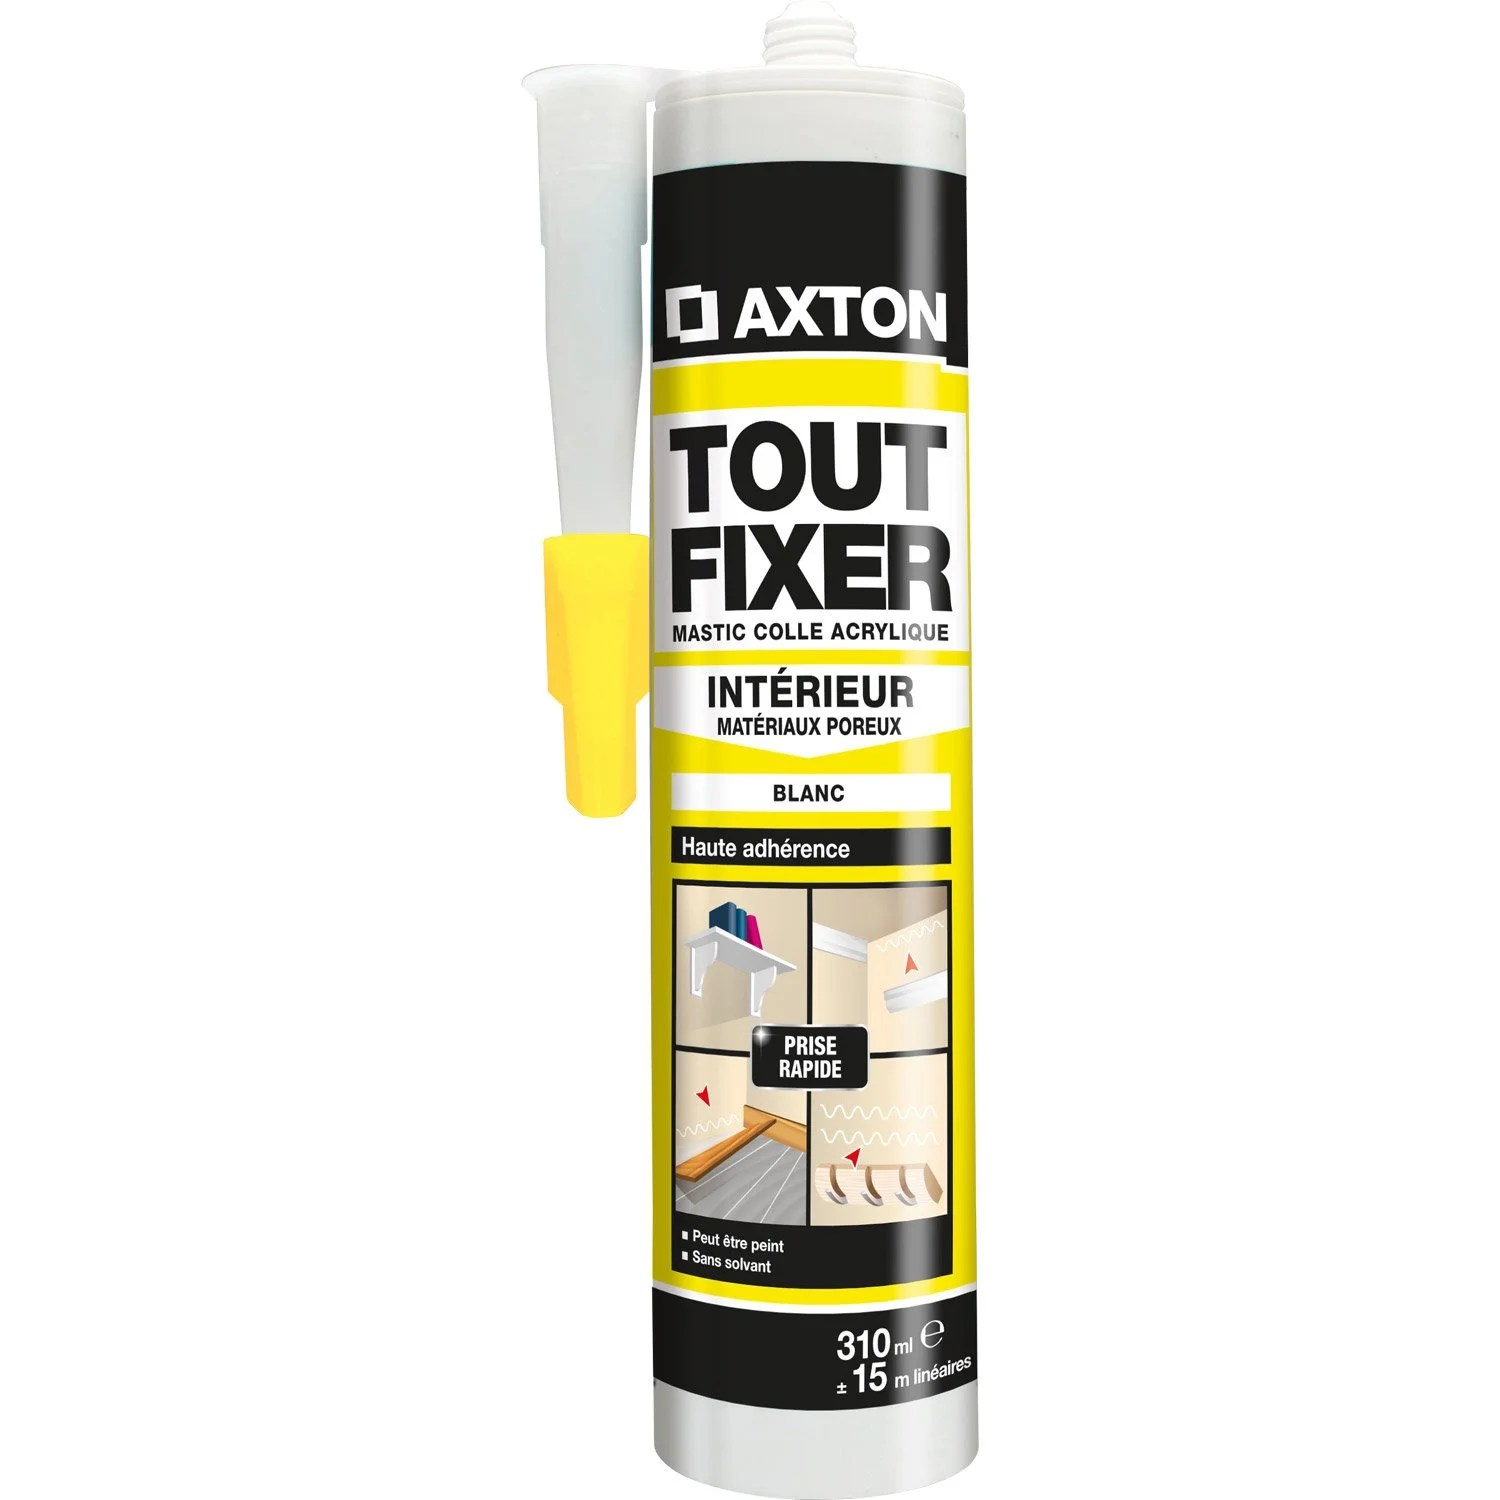 Colle Carrelage Leroy Merlin Colle Mastic Tout Fixer Axton 310 Ml Leroy Merlin